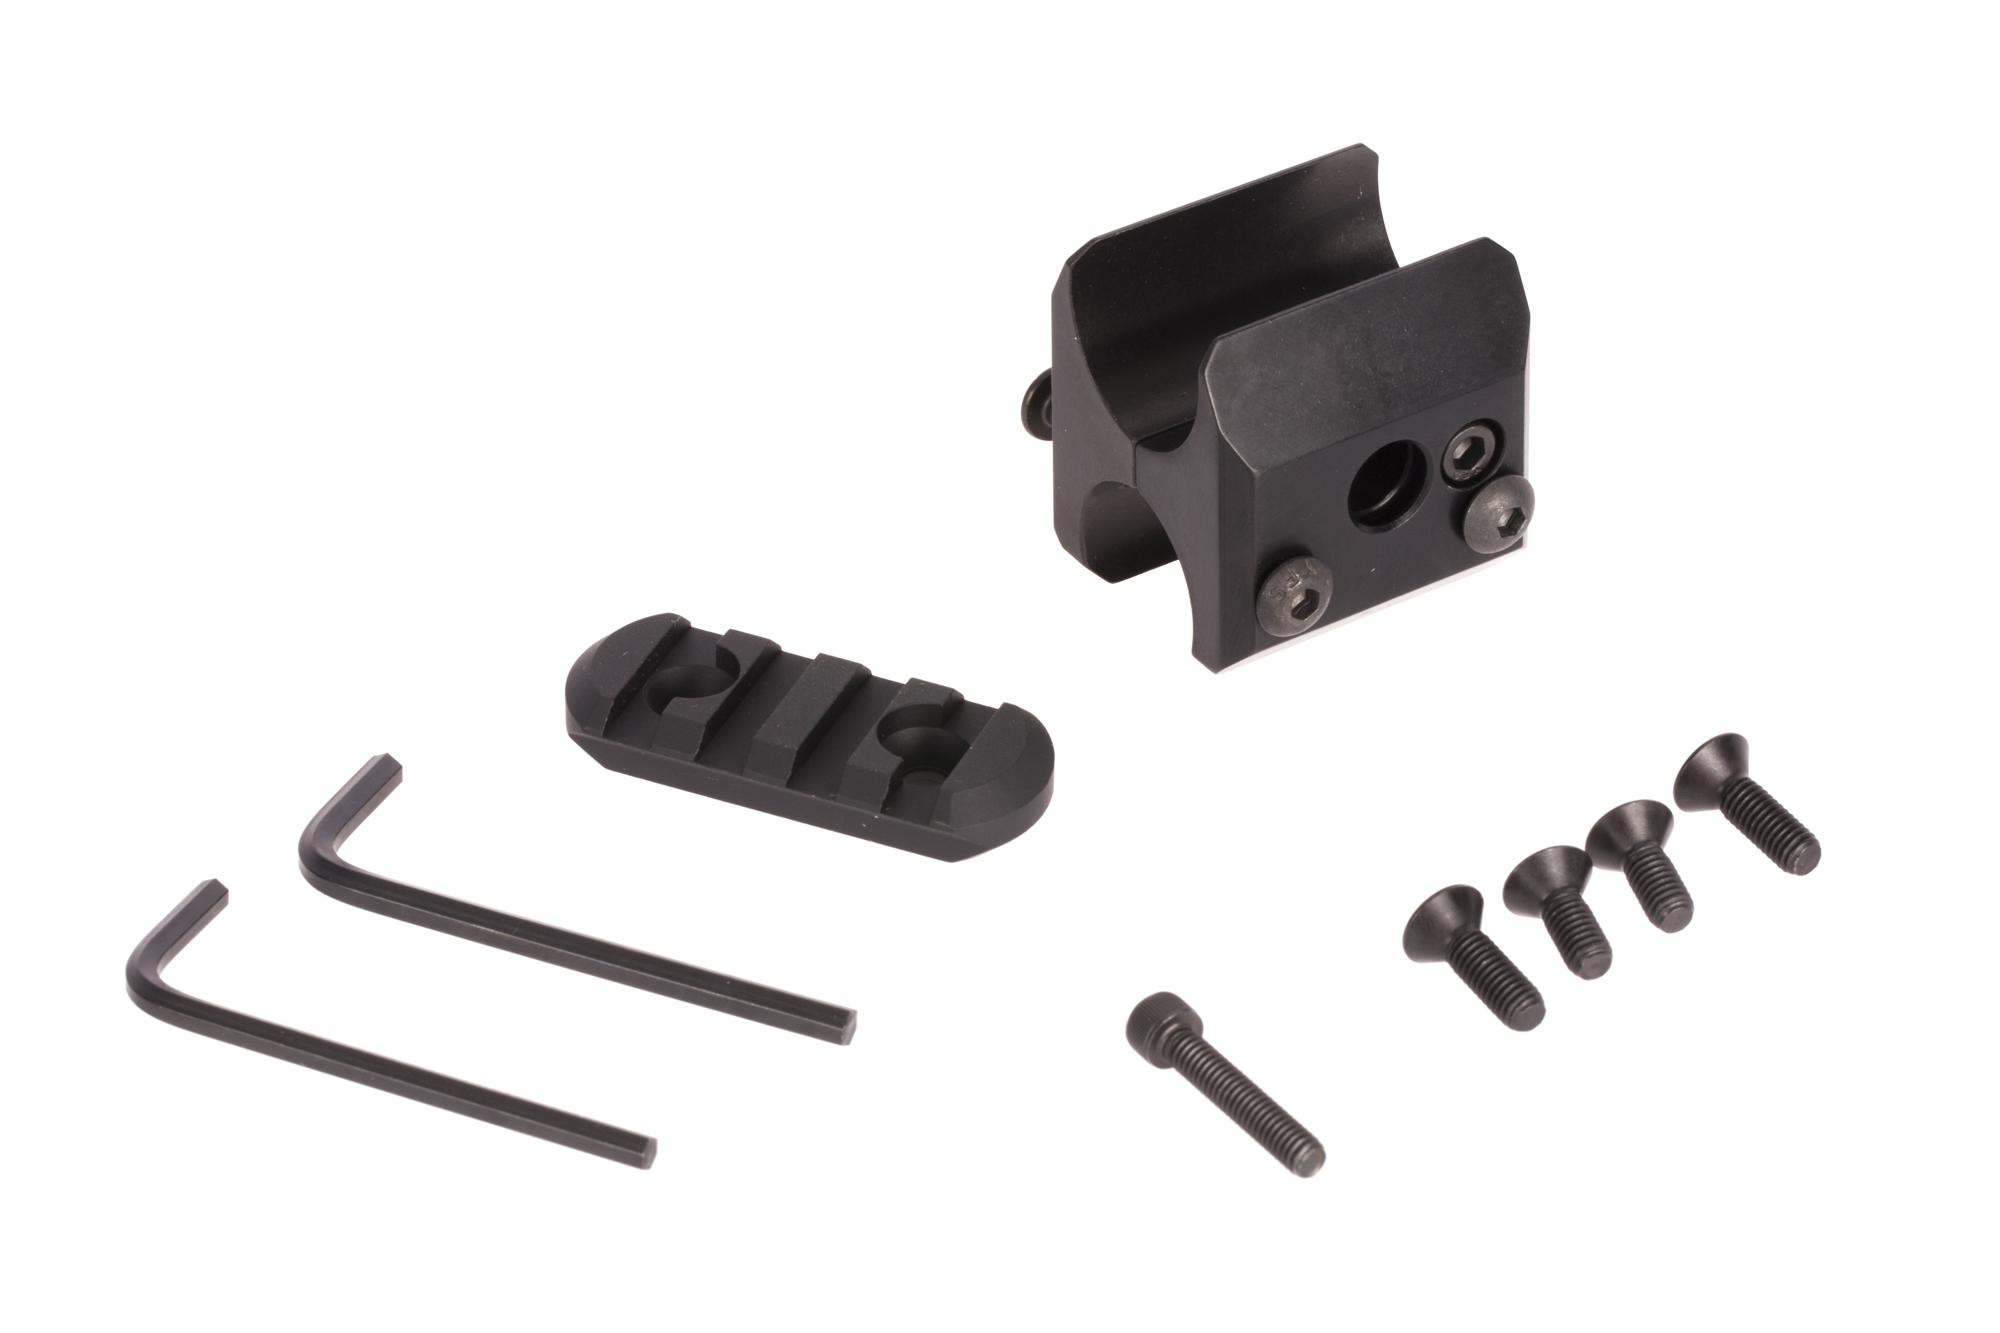 Mesa Tactical Magazine Clamp with Rail for Remington 870 / Mossberg 930